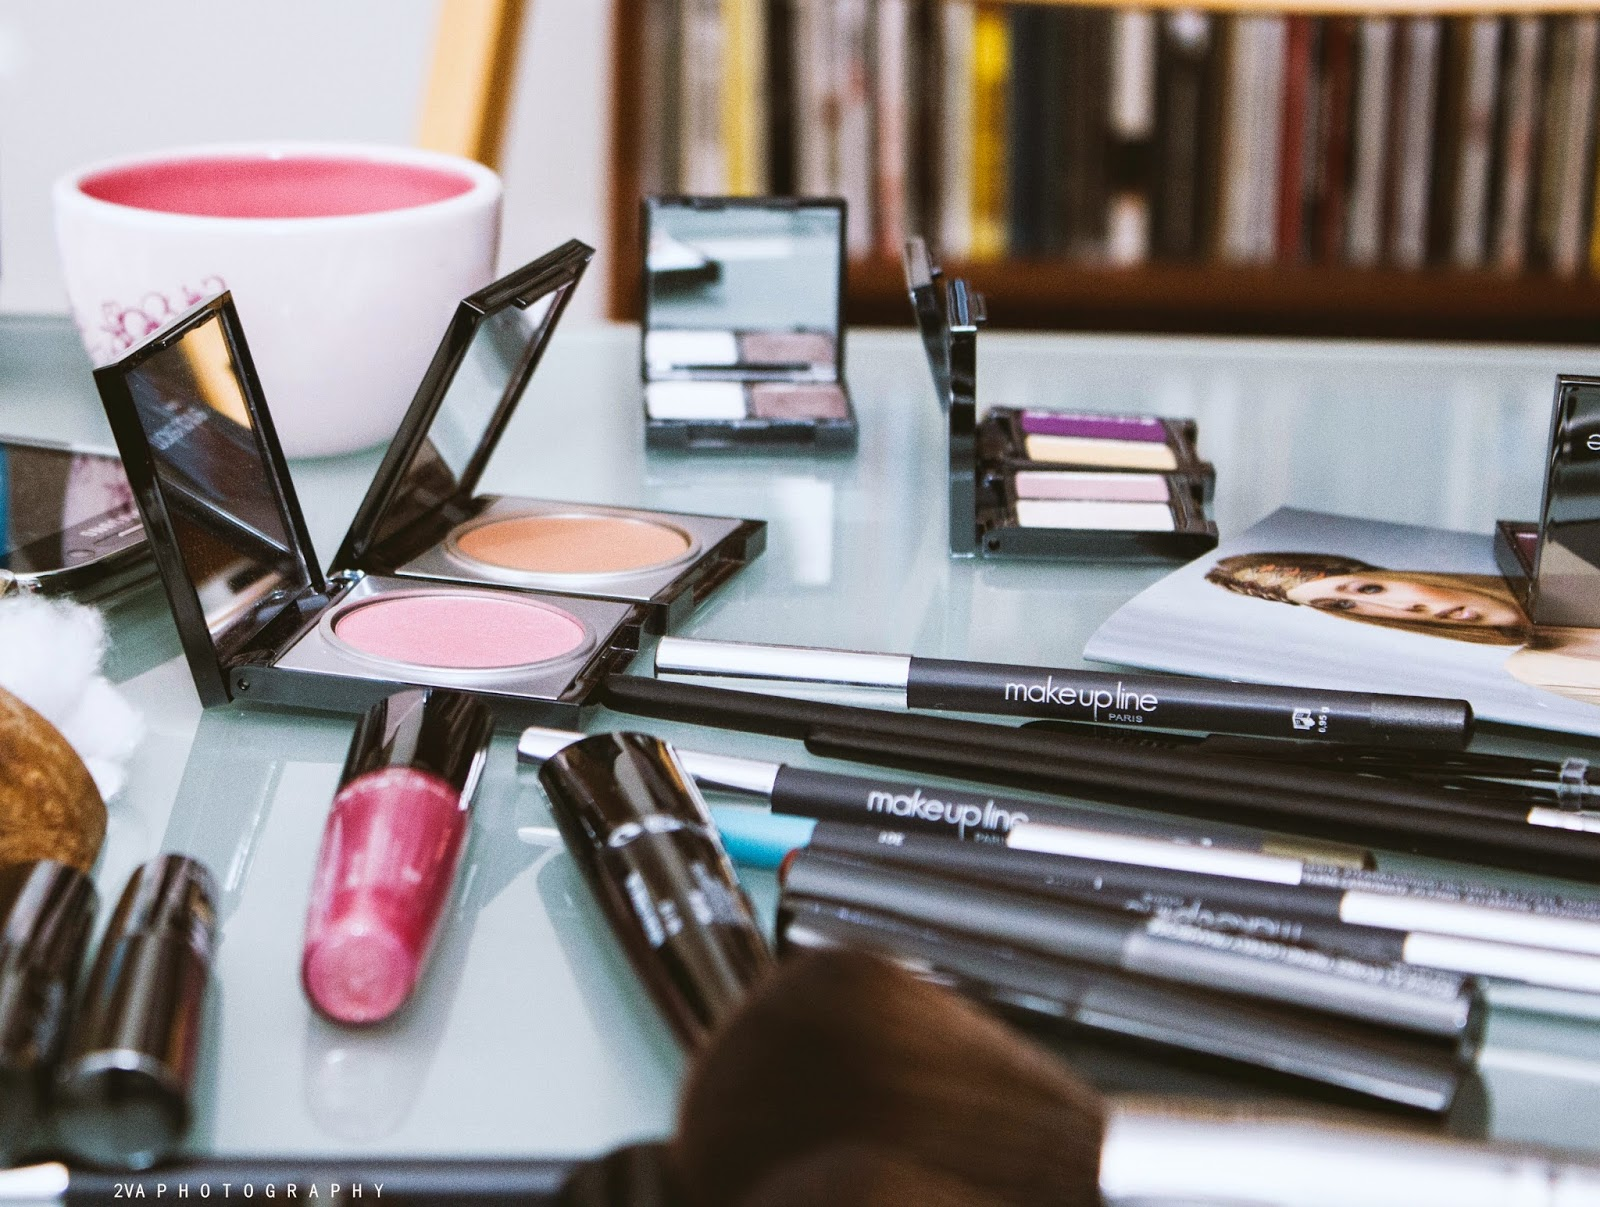 Un dimanche aprem' coaching makeup avec Make up line